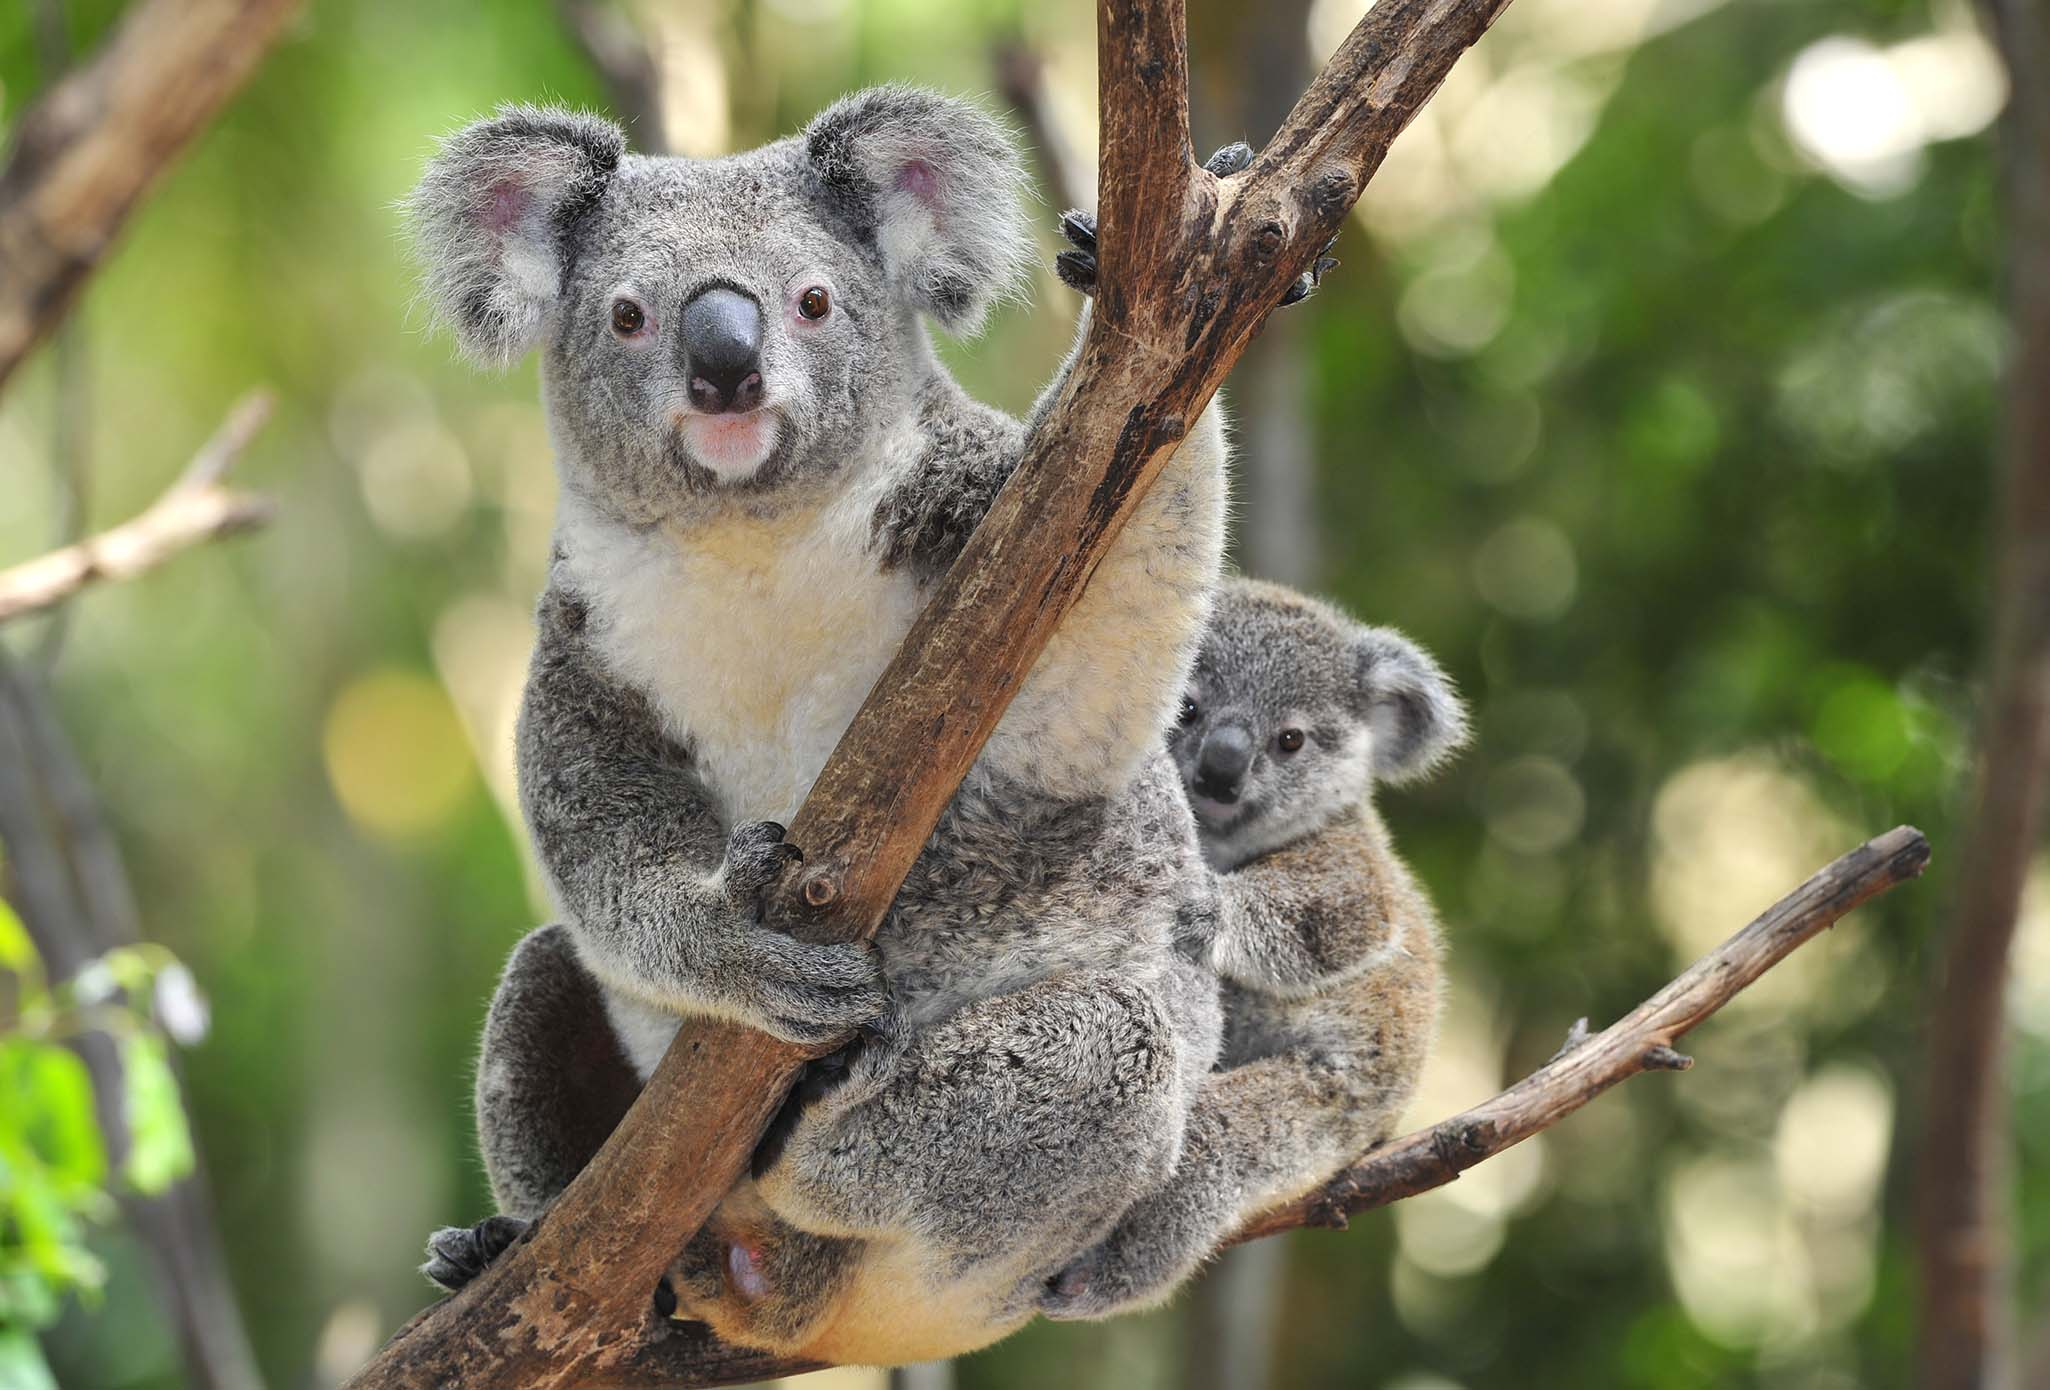 Greens disappointed in Nambucca Shire Council's failure to support Great Koala National Park - Dawn Walker MP